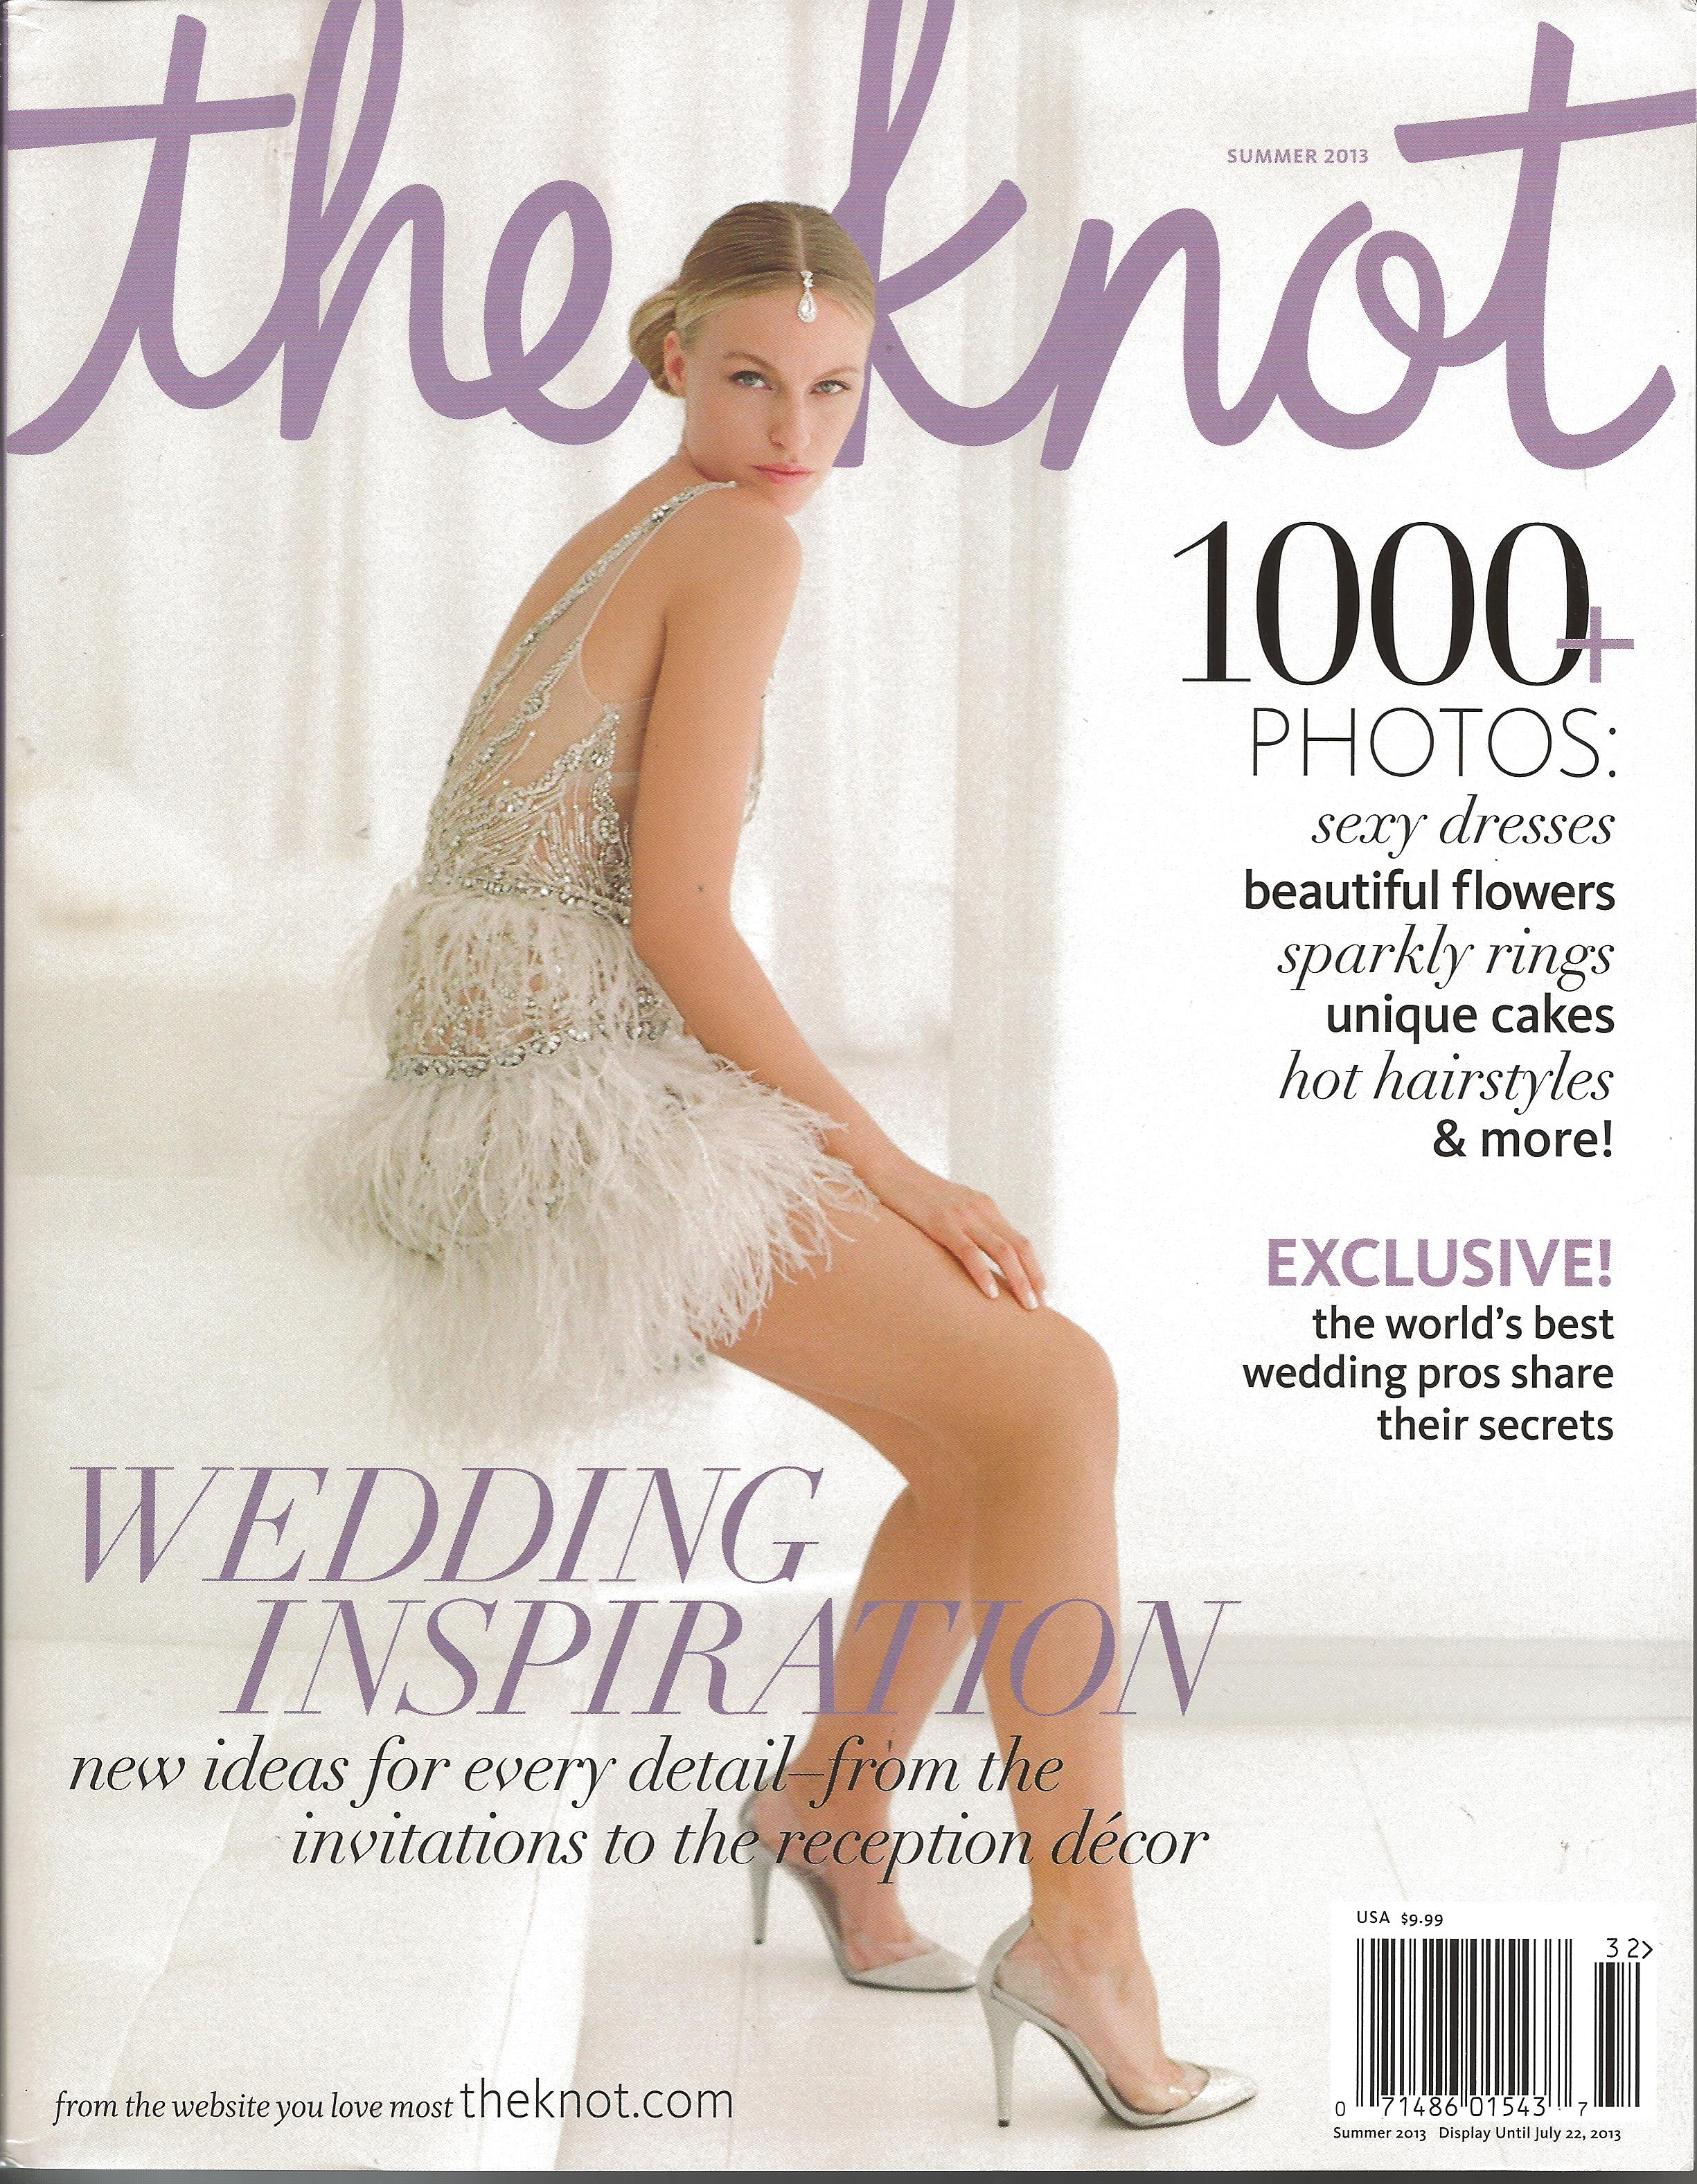 The Knot Magazine cover summer 2013.jpg